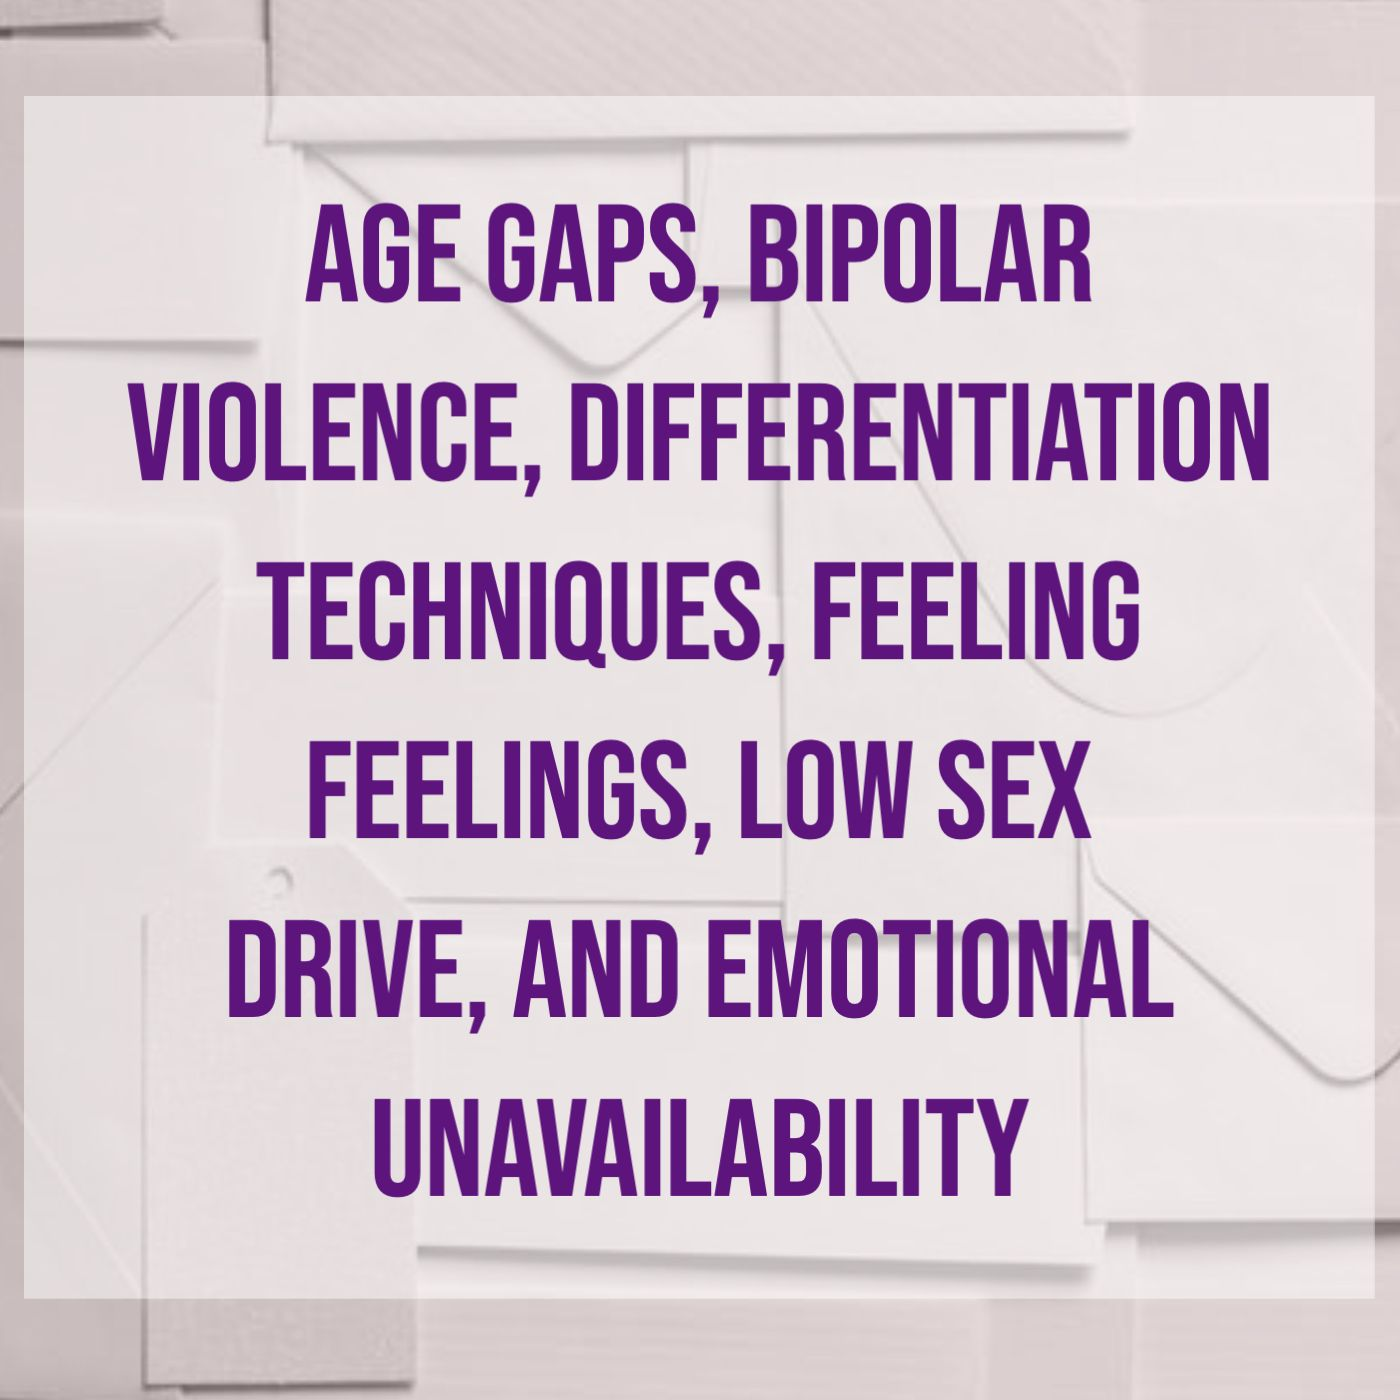 Age Gaps, Bipolar Violence, Differentiation Techniques, Feeling Feelings, Low Sex Drive, and Emotional Unavailability